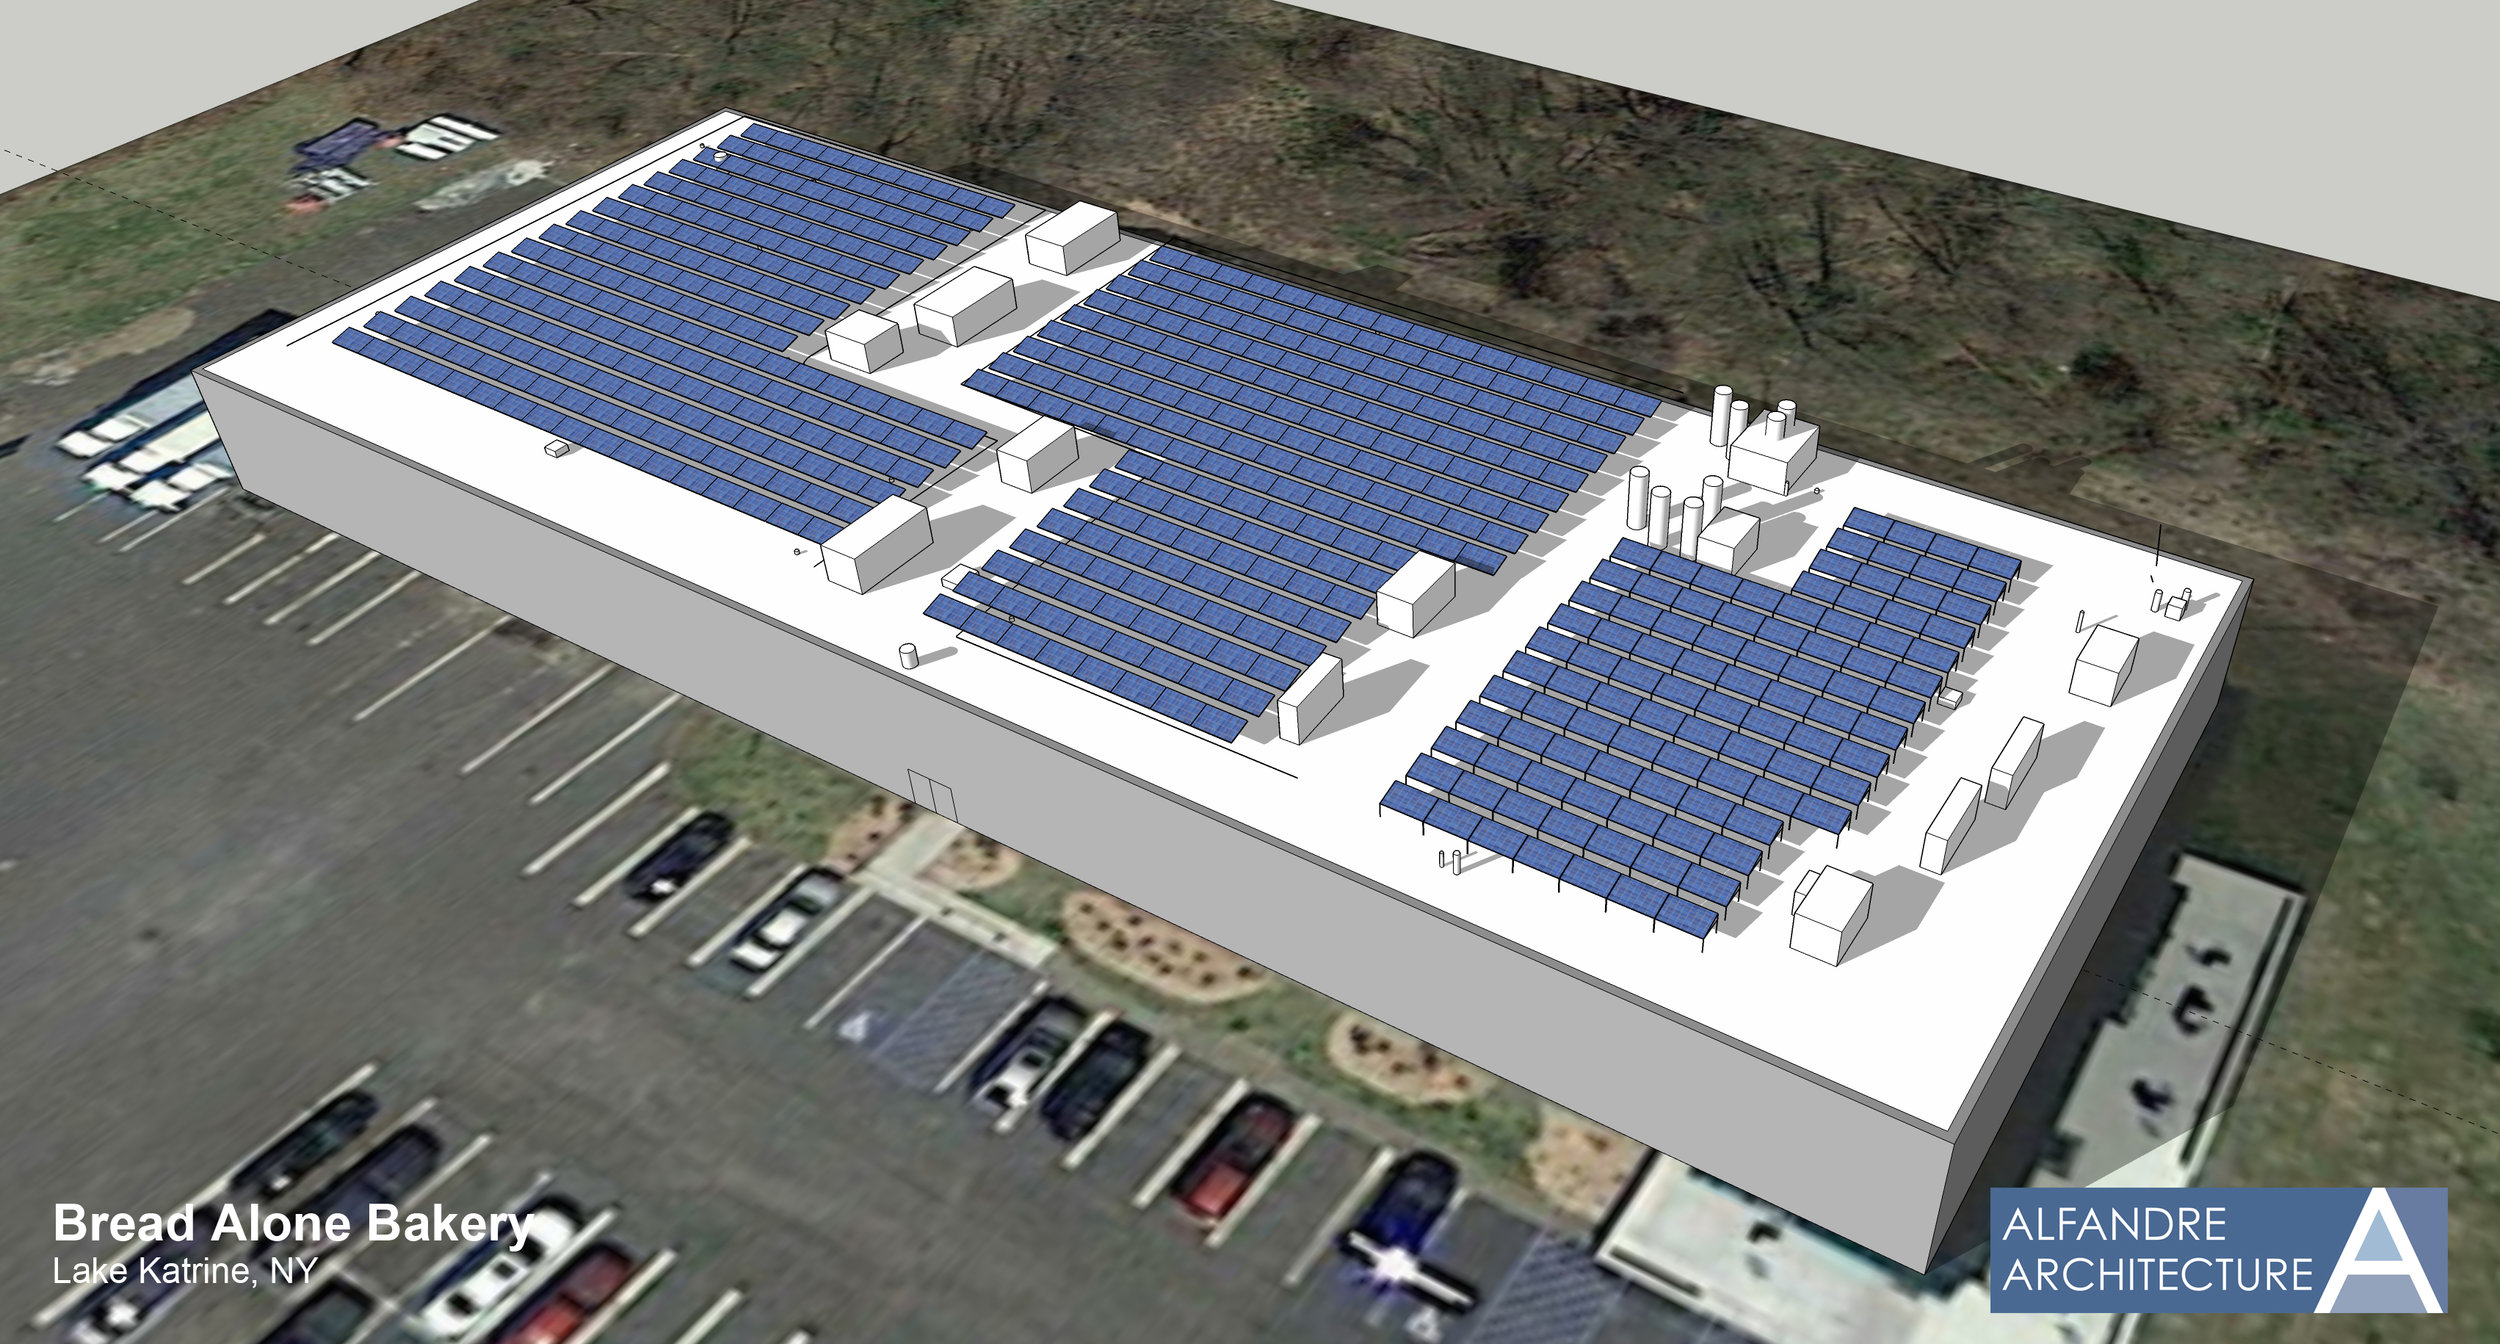 Rendering of the bakery with our planned 200KW solar array.